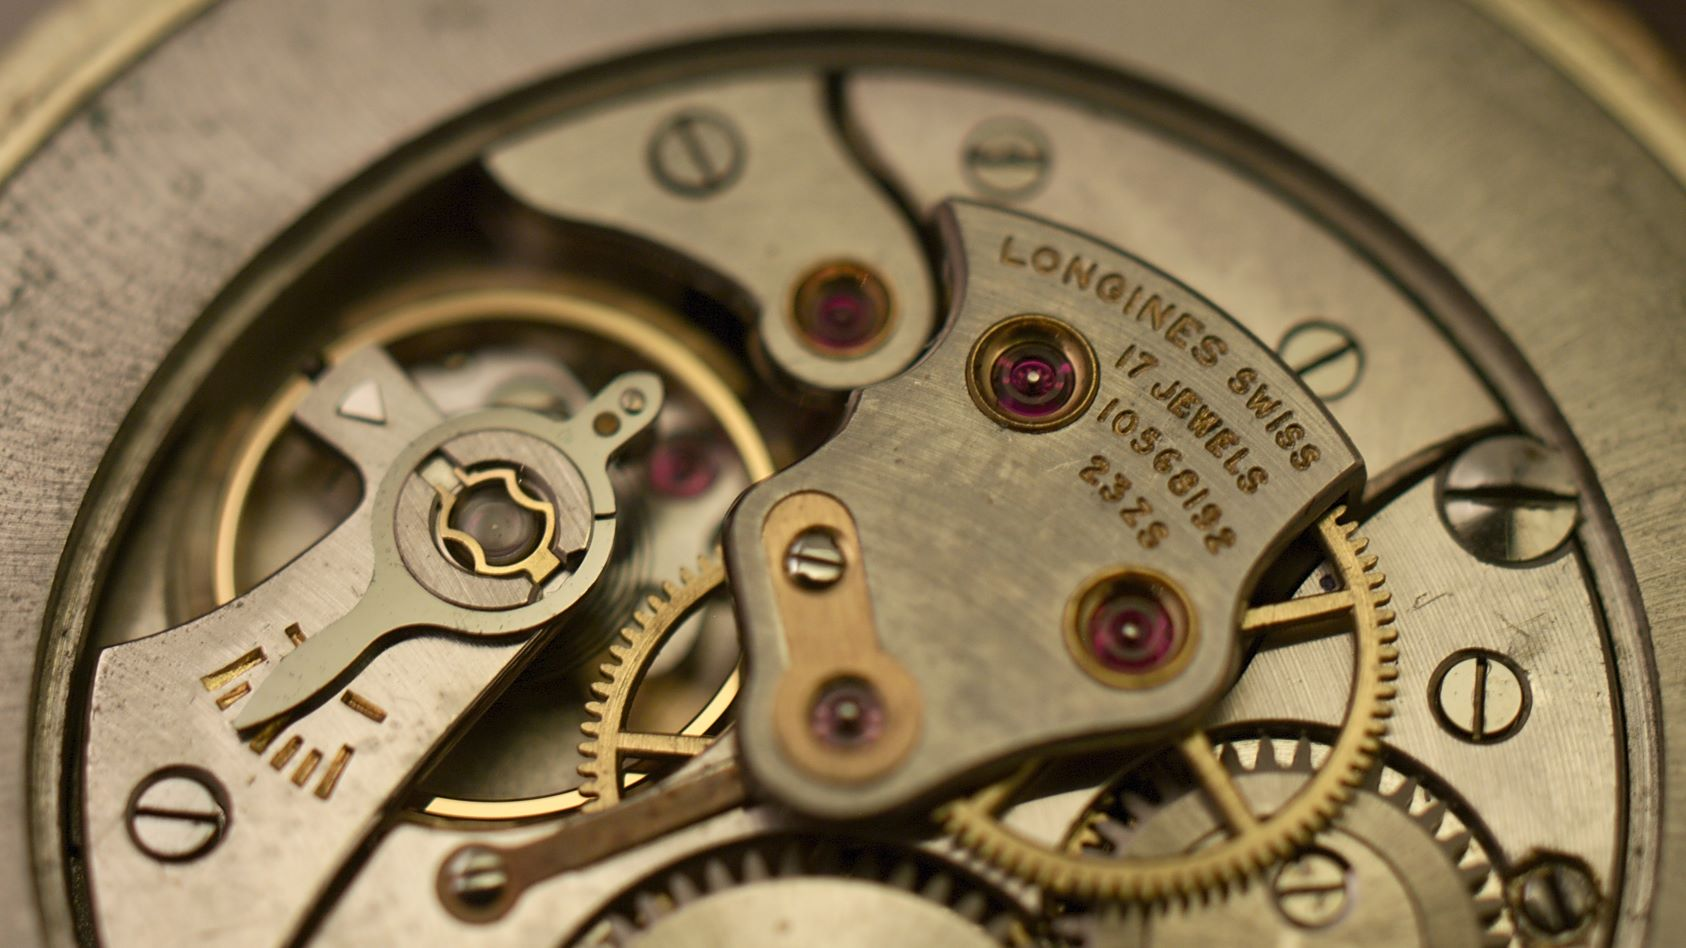 Movement of a Longines 14k gold 1957